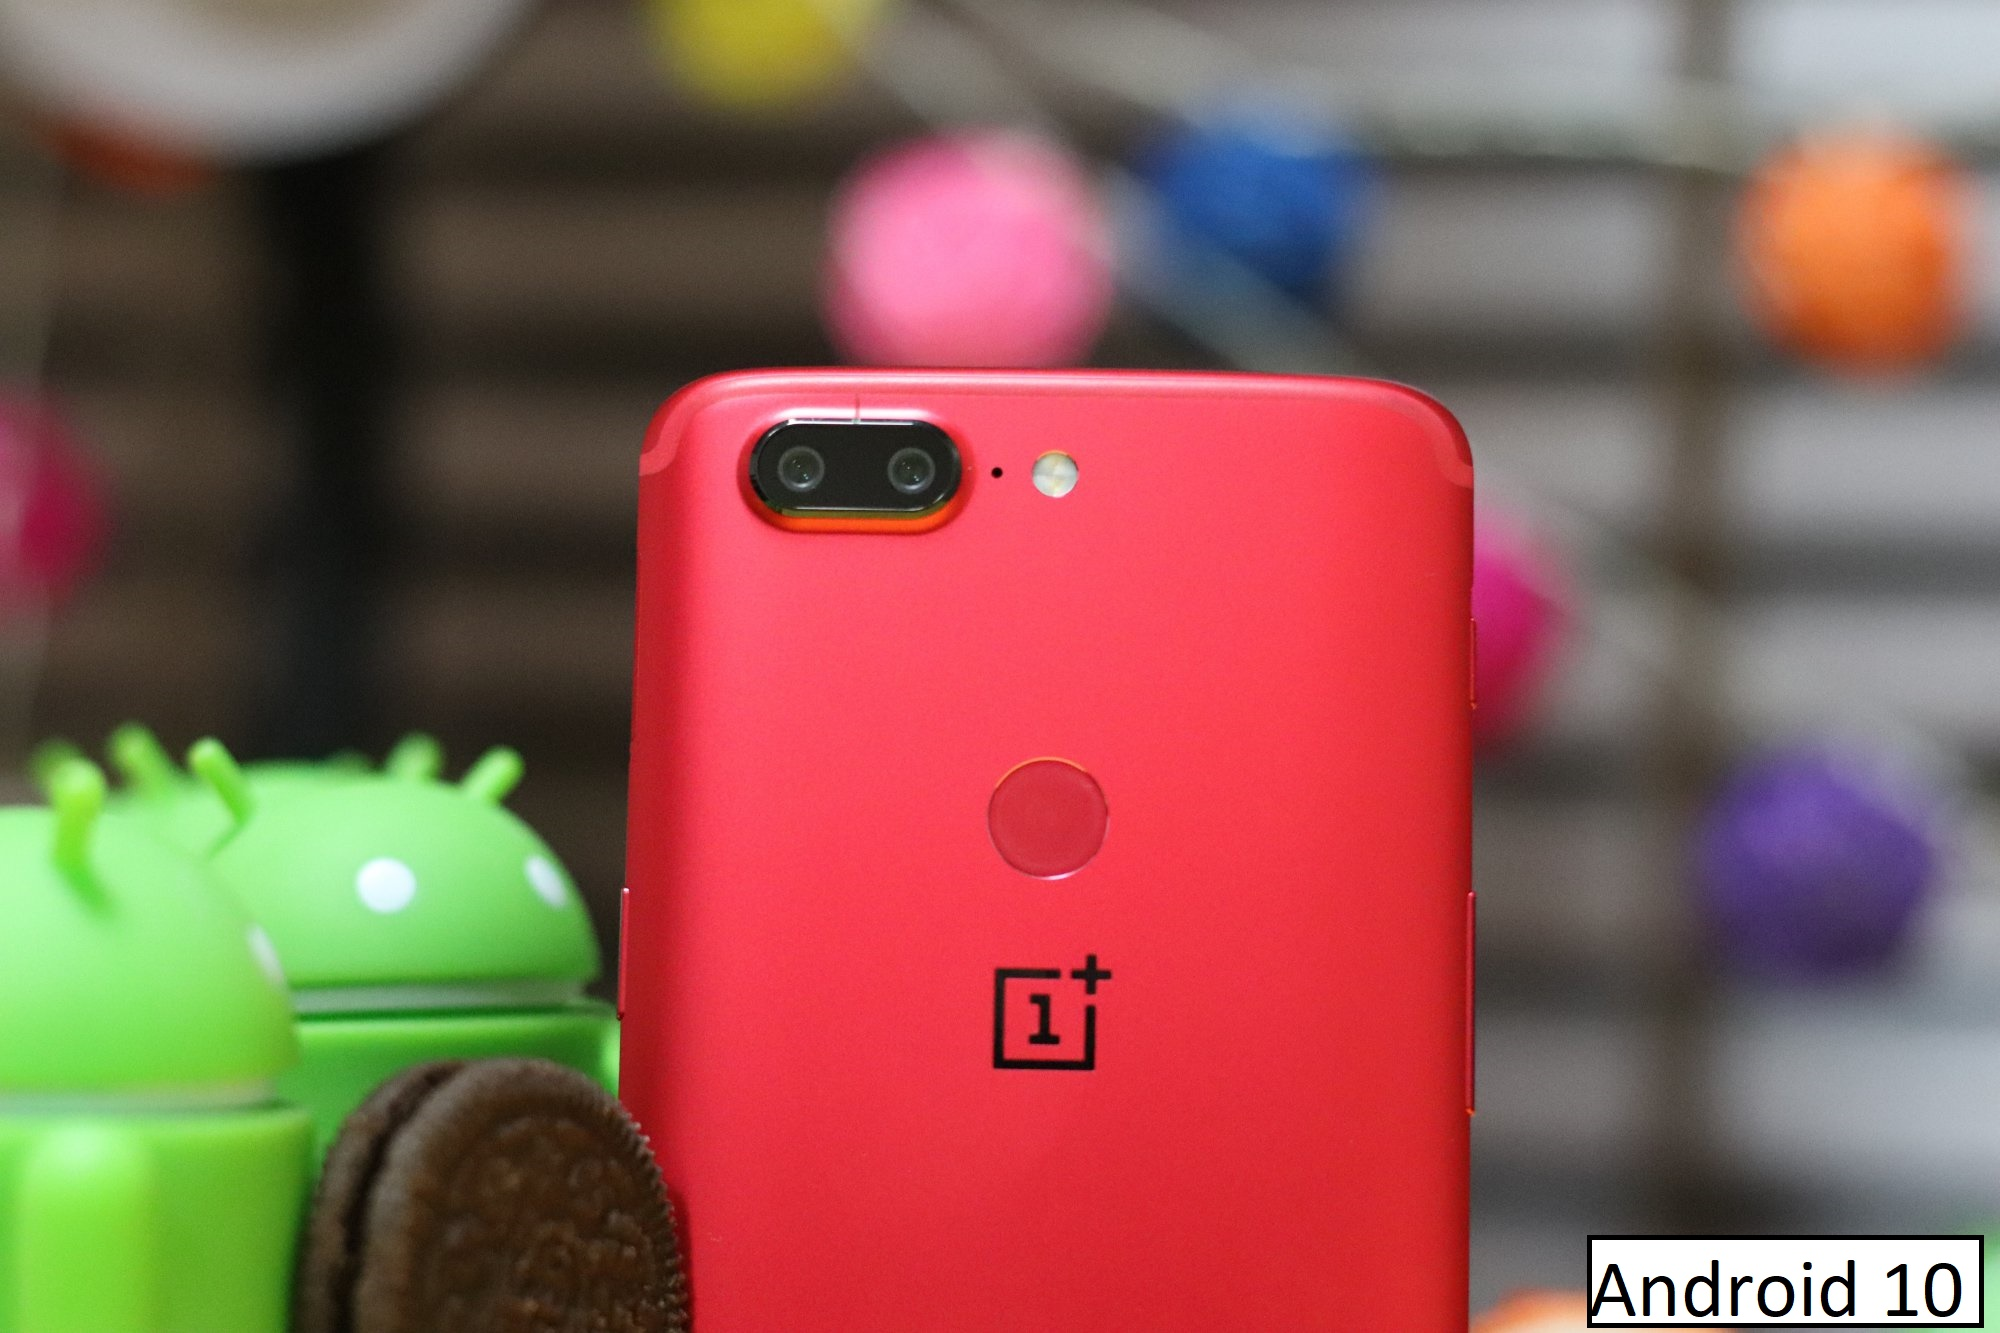 OnePlus 5 and 5T